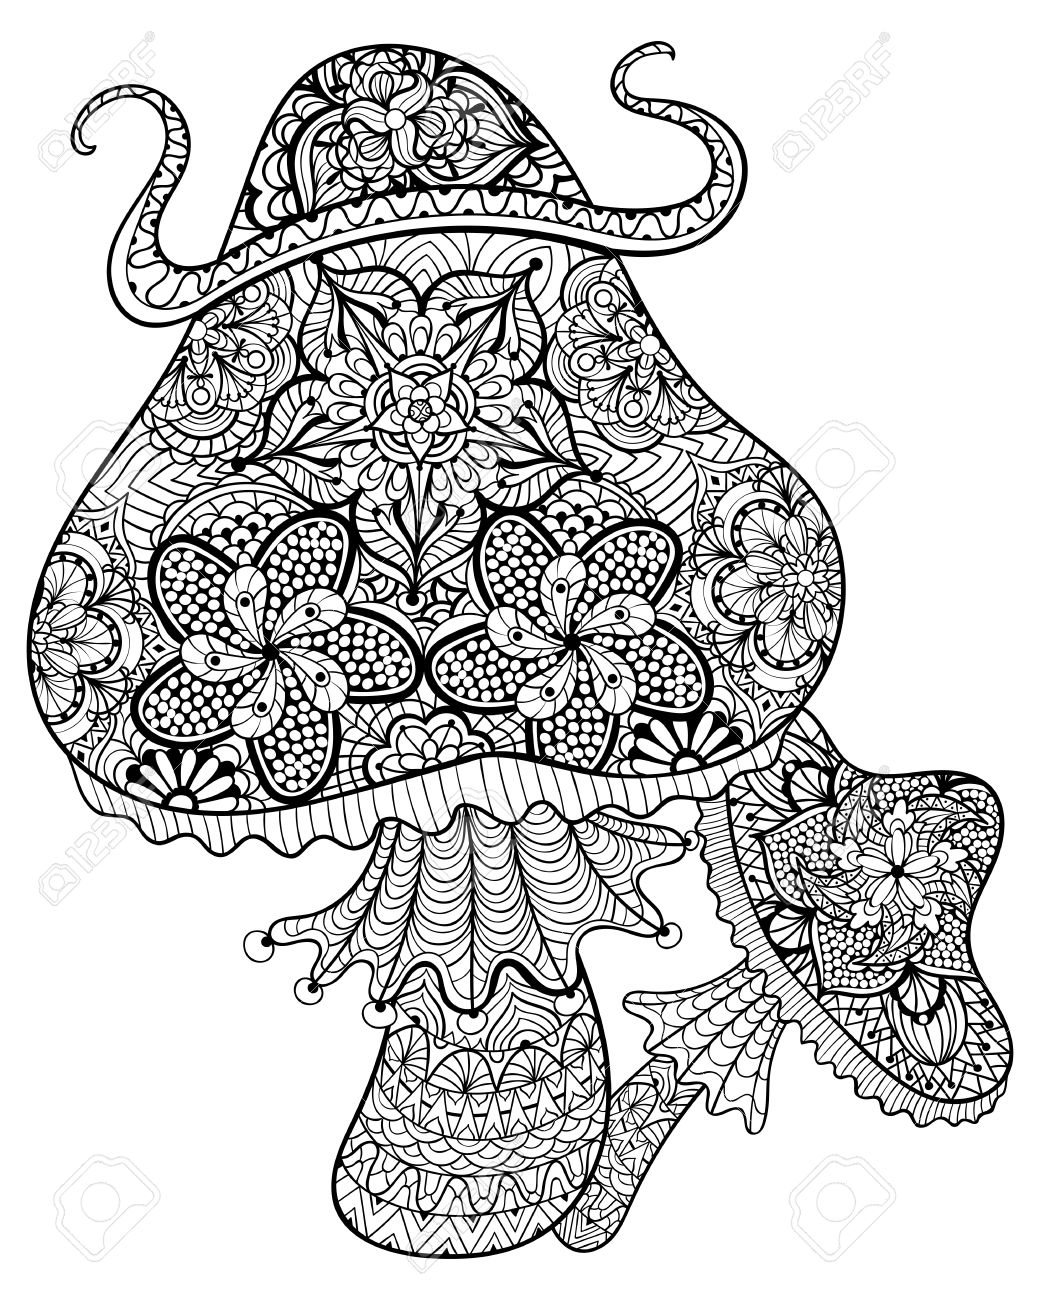 50 398 coloring pages stock vector illustration and royalty free